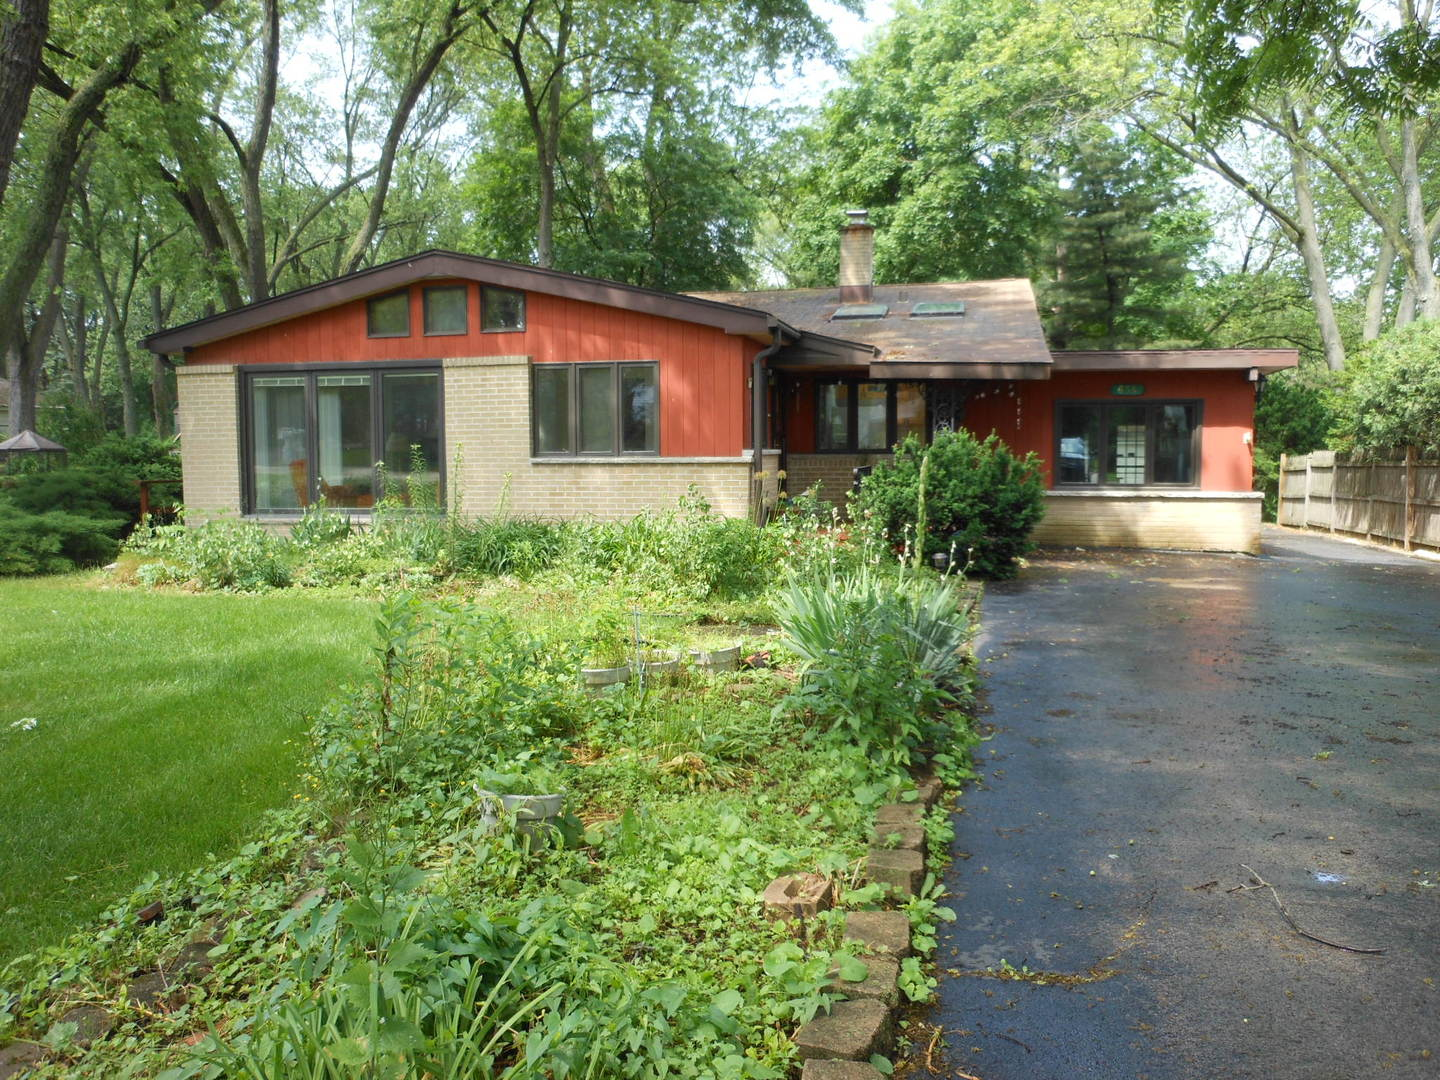 """EXTRA! EXTRA! - THIS SPACIOUS SPLIT LEVEL OFFERS EXTRA LIVING SPACE, EXTRA GARDEN/YARD SPACE & EXTRA GARAGE SPACE!  FRESHLY PAINTED INTERIOR, HARDWOOD FLOORS, SKYLIGHTS IN LIVING ROOM & KITCHEN, GREAT ROOM OFFERS NATURAL LIGHT & OPENS TO THE LIVING RM, KITCHEN W/CORIAN COUNTERS & APPLIANCES, SUN/FLORIDA ROOM OFF KITCHEN OFFERS MORE EXTRA SPACE, LOWER LEVEL FINISHED W/ FAMILY ROOM & 2ND BATH.  GUTTERS W/LEAF GUARD. LOCATED ON A QUIET STREET ON A HUGE, IN-TOWN LOT (67X310) THAT BACKS UP TO A WOODED AREA. BEAUTIFUL GARDENS THROUGHOUT YARD, A BRICK OUTDOOR GRILL, 3 SHEDS, HOUSE GENERATOR & HEATED 2+ CAR GARAGE W/EXTRA STORAGE.   SO MANY EXTRAS HERE!  PROPERTY IS AN ESTATE - BEING SOLD IN """"AS-IS"""" CONDITION"""